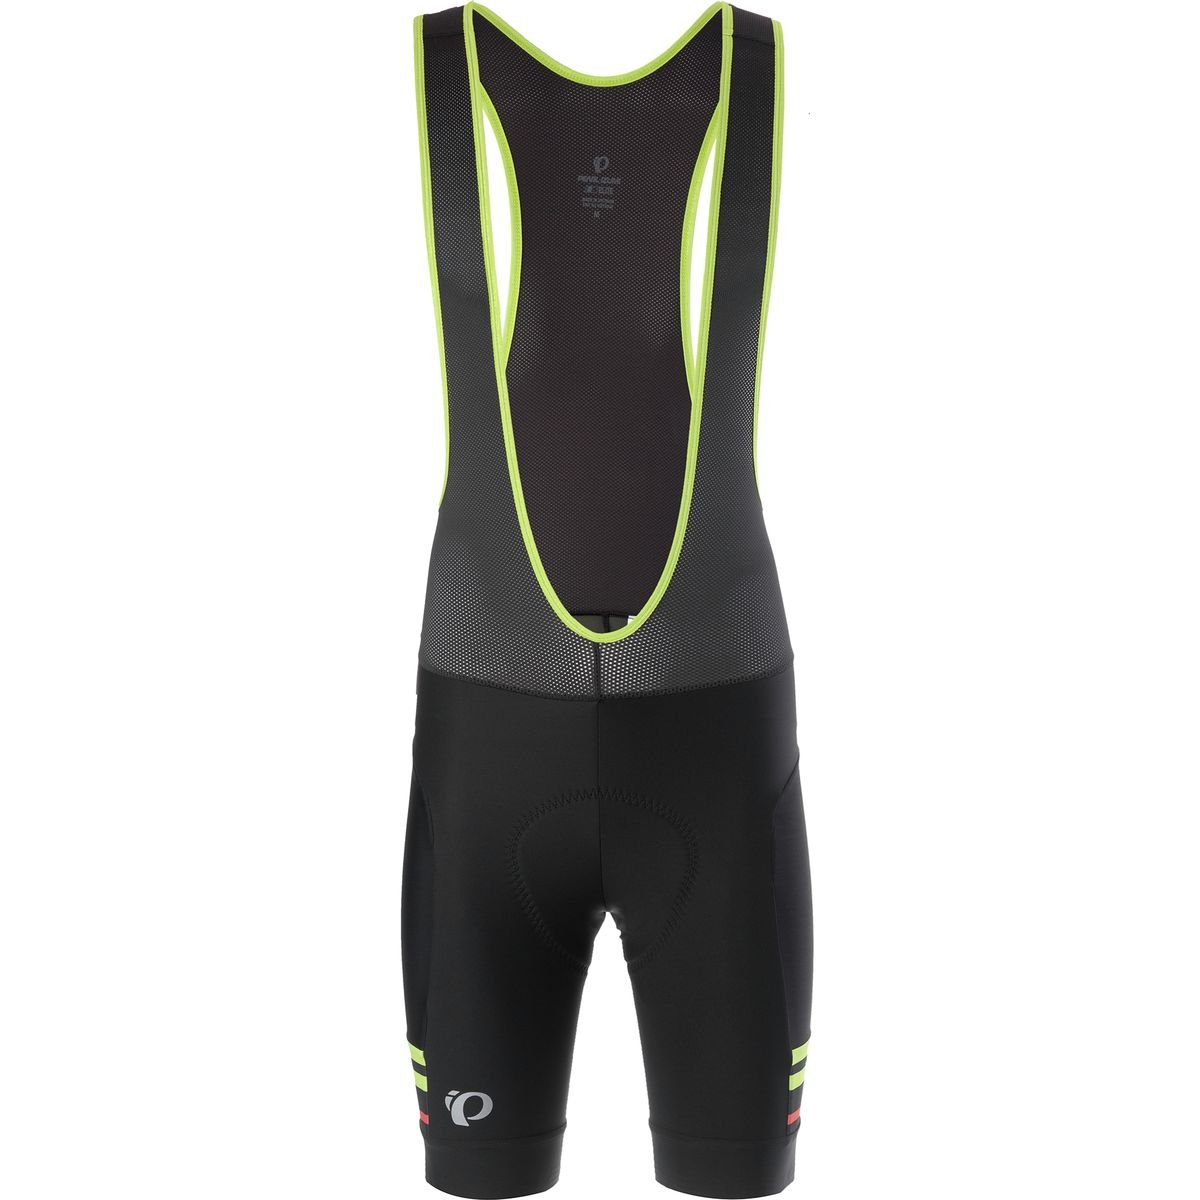 Pearl iZUMi Elite Escape Bib Shorts, Black/Citron, Small